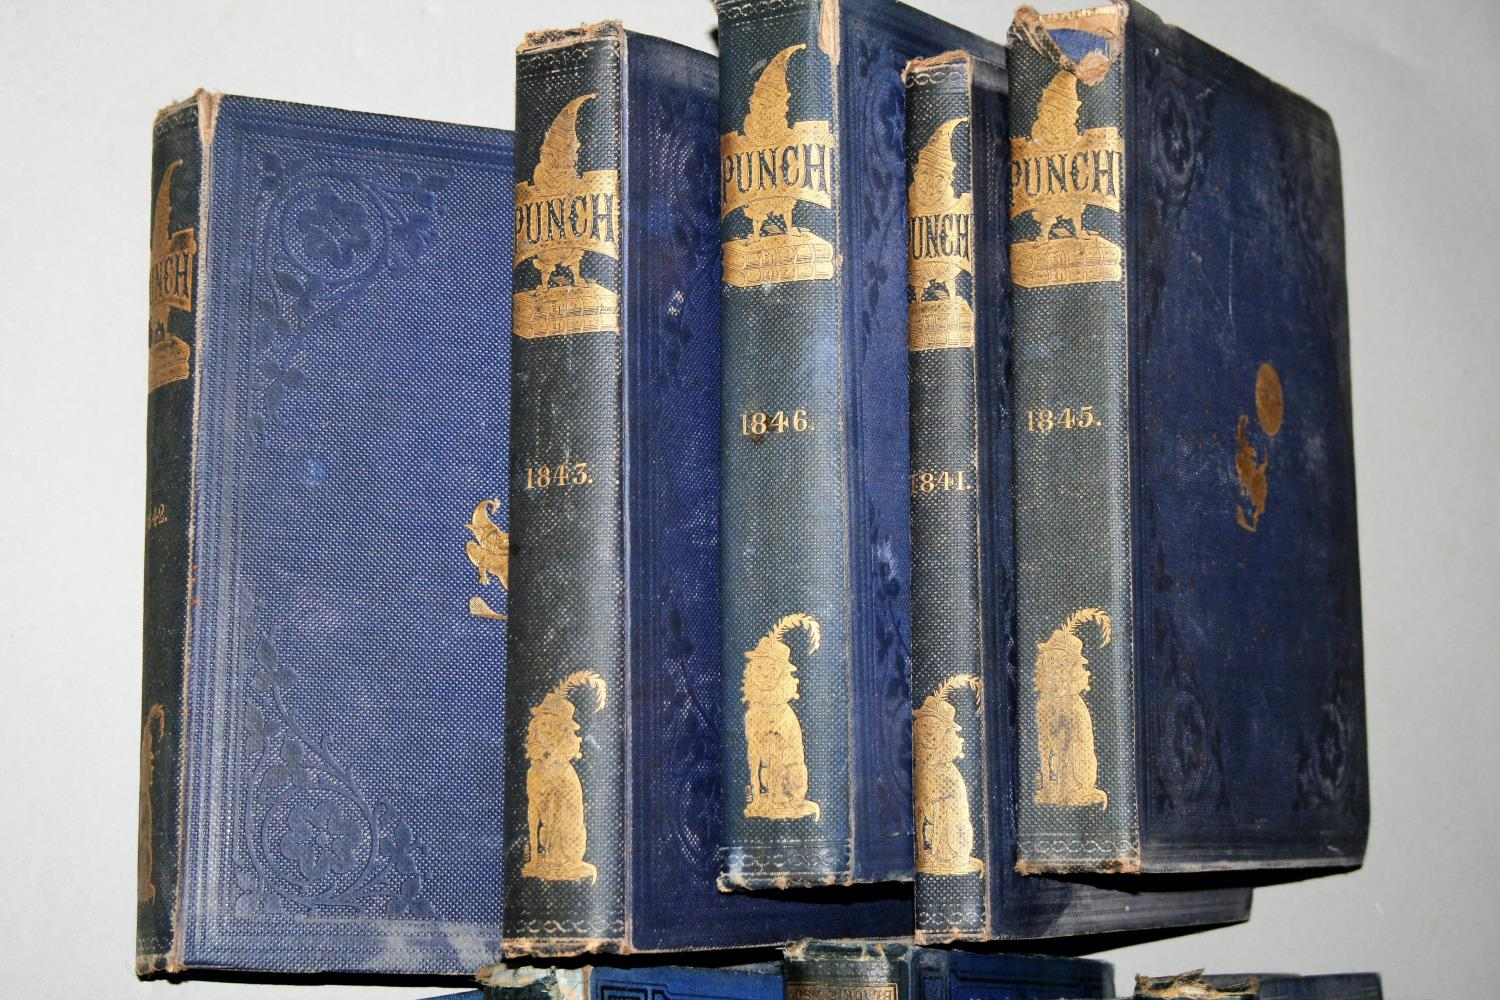 """Six volumes of """"The Popular Encyclopaedia"""" and five books """"Punch"""" 1841, 1842, 1843, 1845, 1846. - Image 3 of 4"""